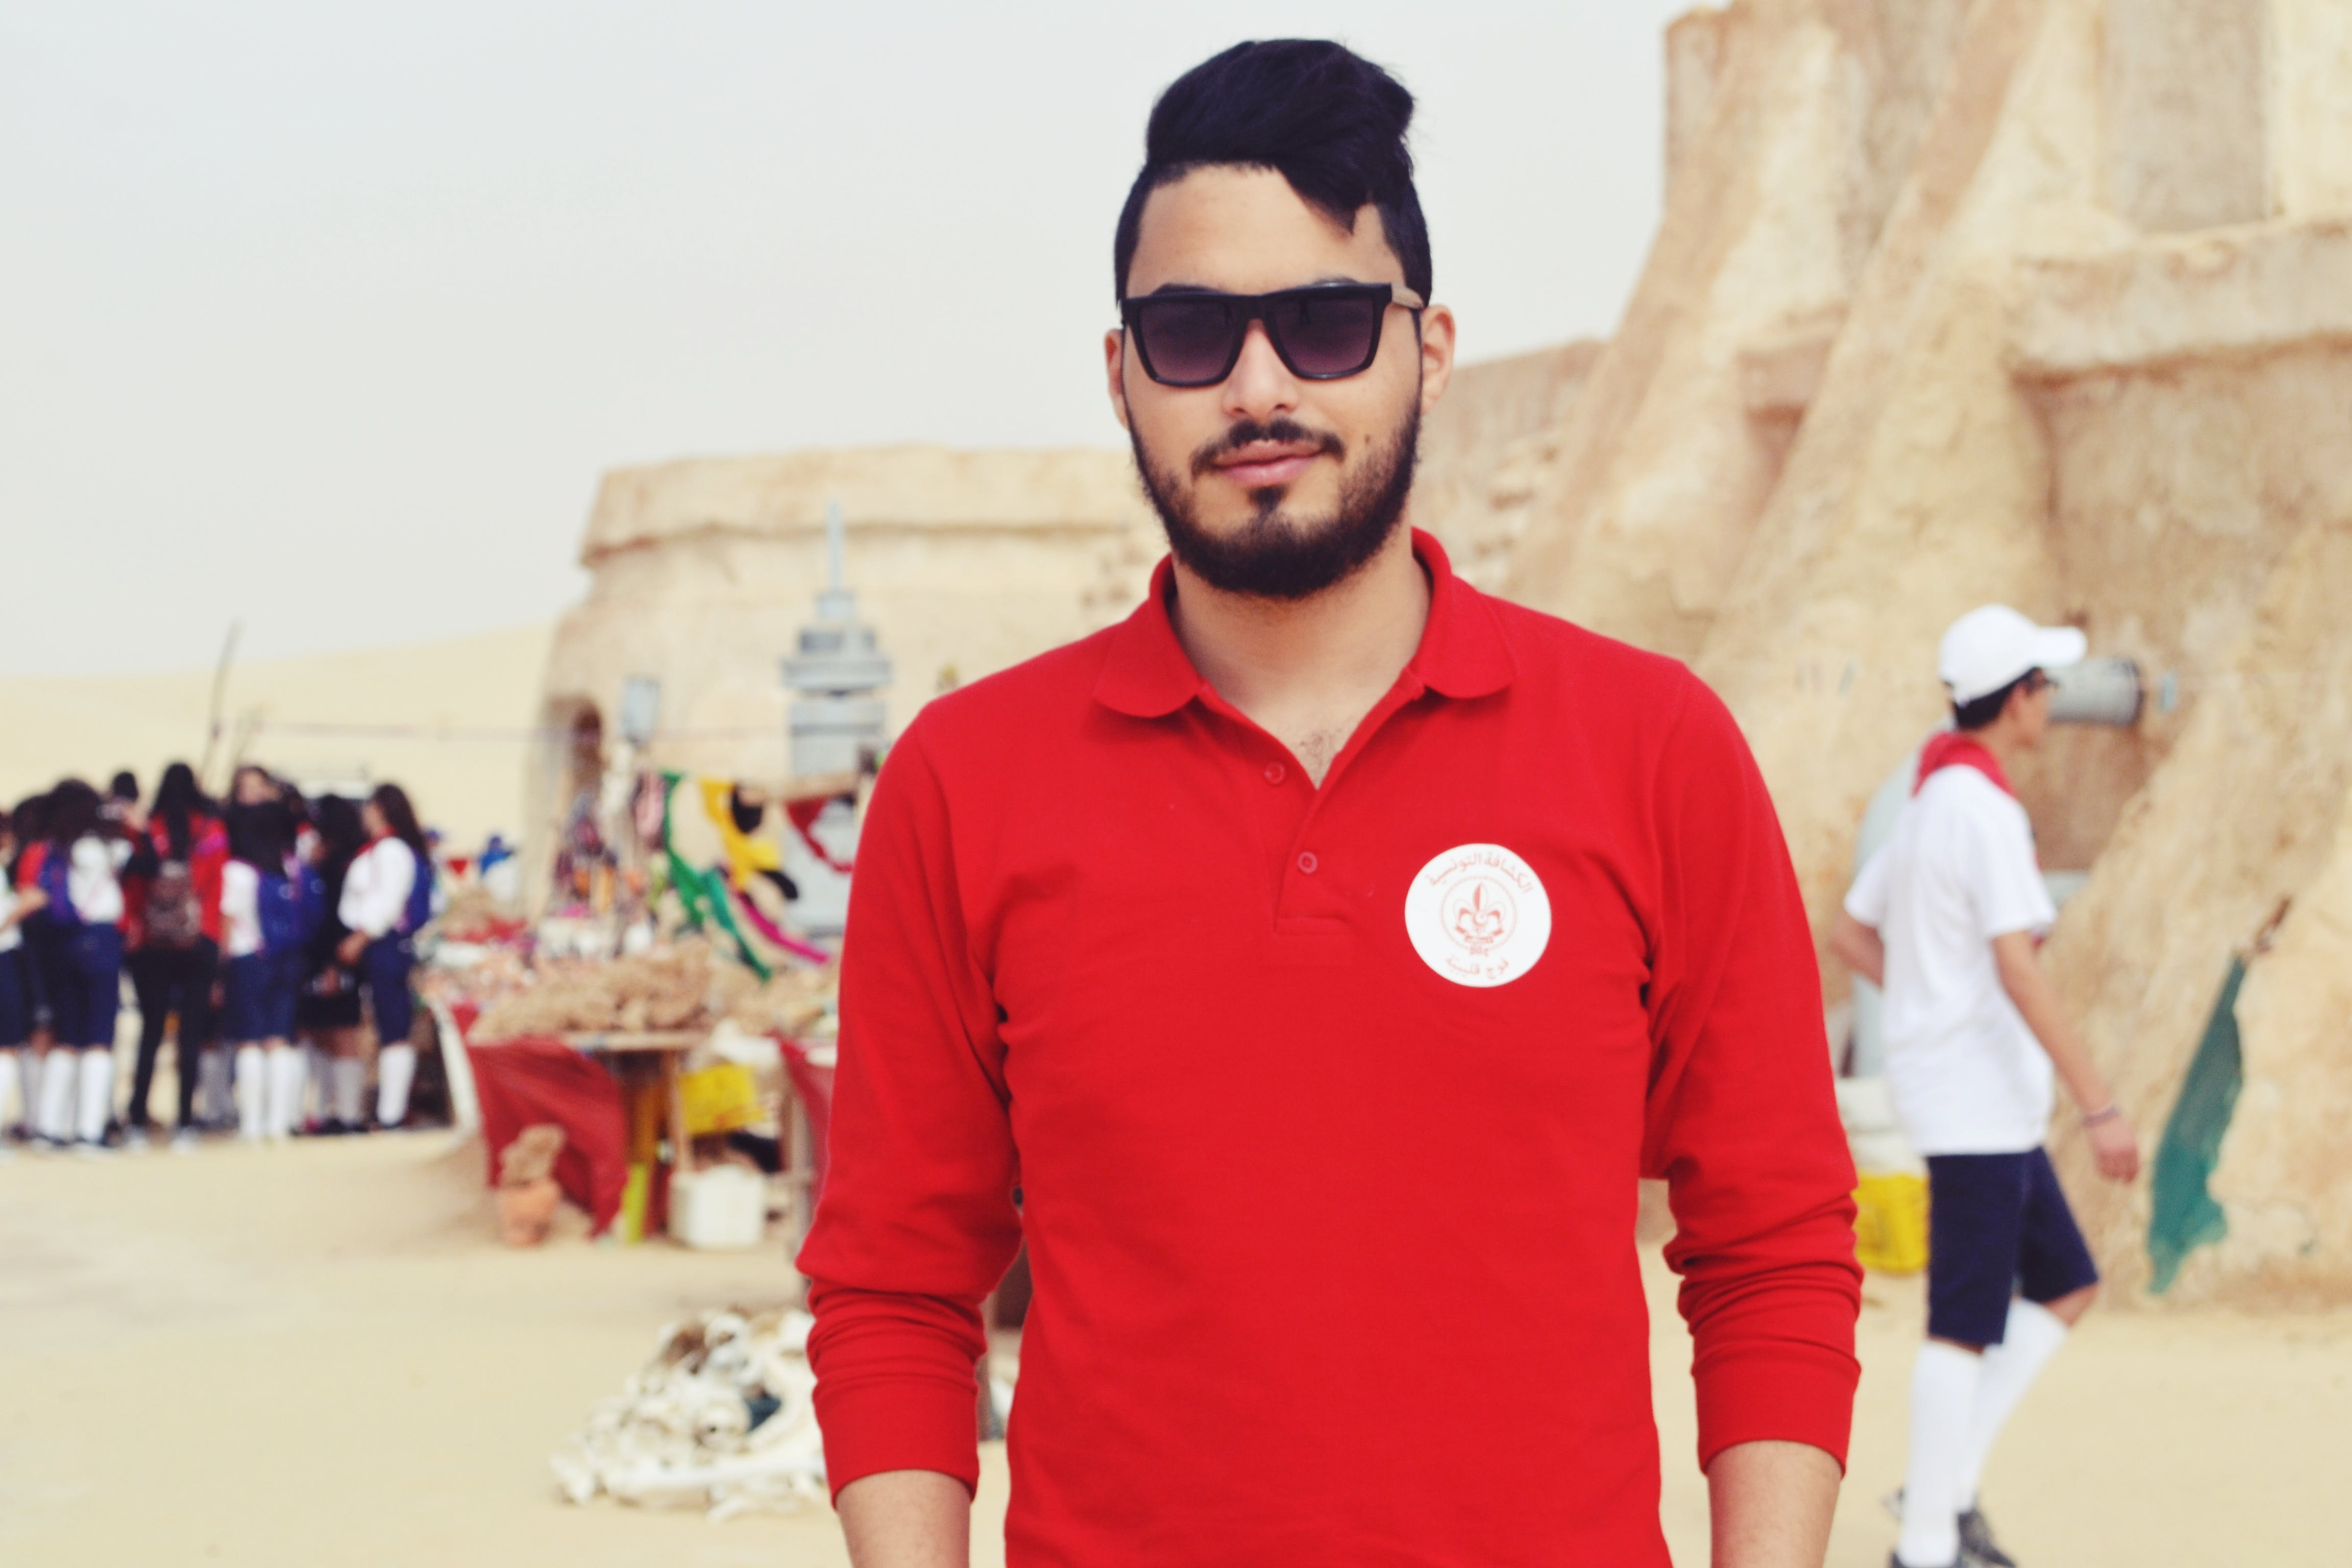 Man Wearing Red Long-sleeved Polo Shirt